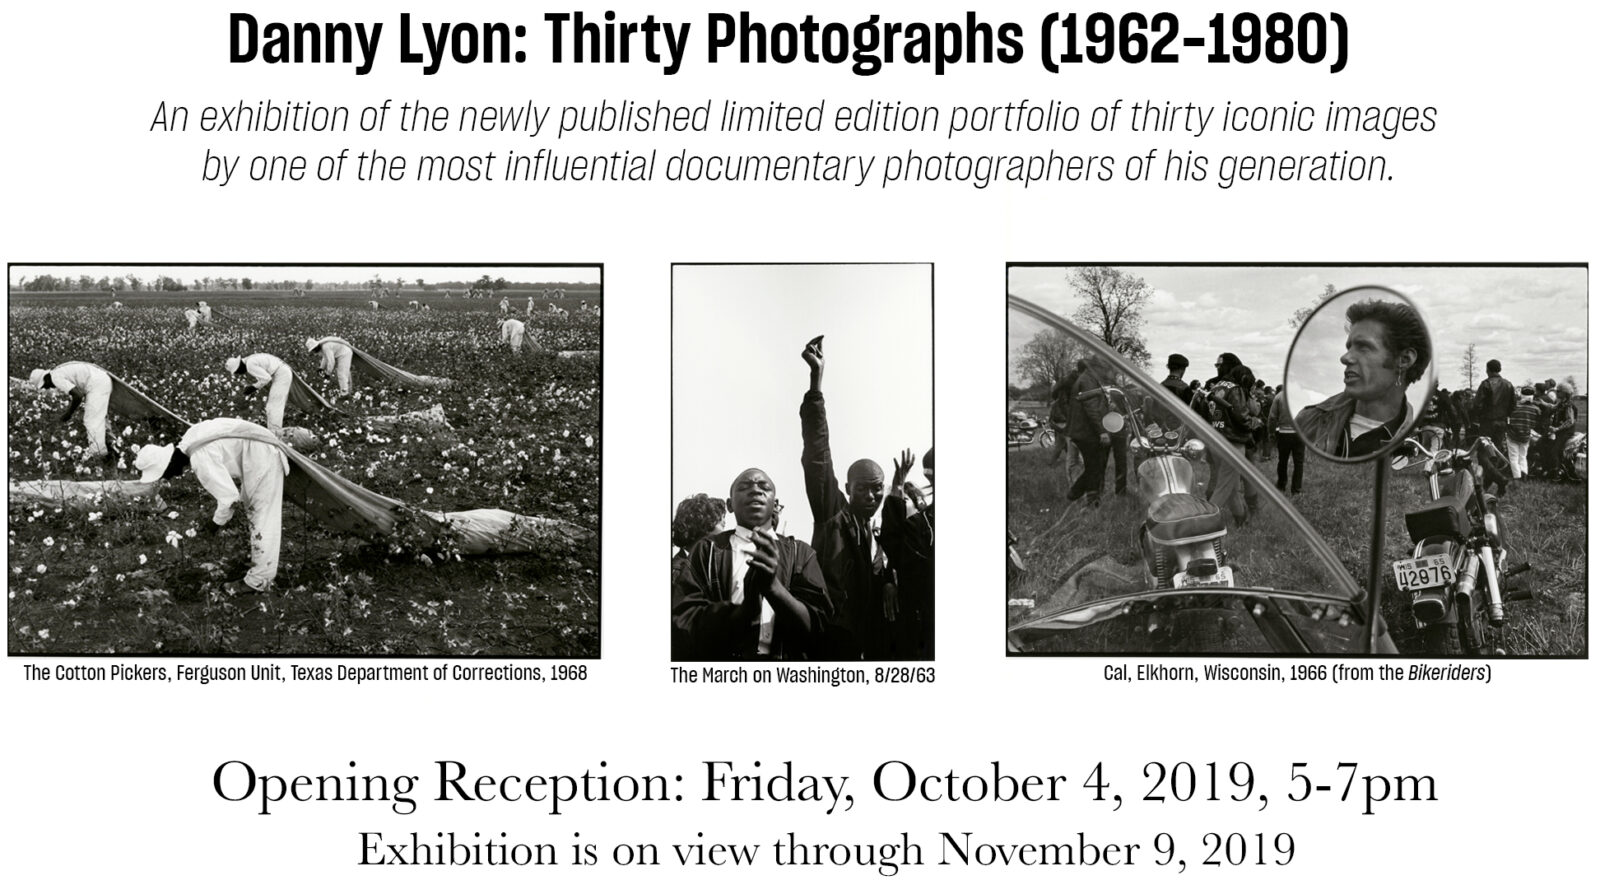 Image of invitation card used for Danny Lyon's exhibition of 'Thirty Photographs (1962-1980). Opening Reception is Friday, October 4 and onview through November 9, 2019.